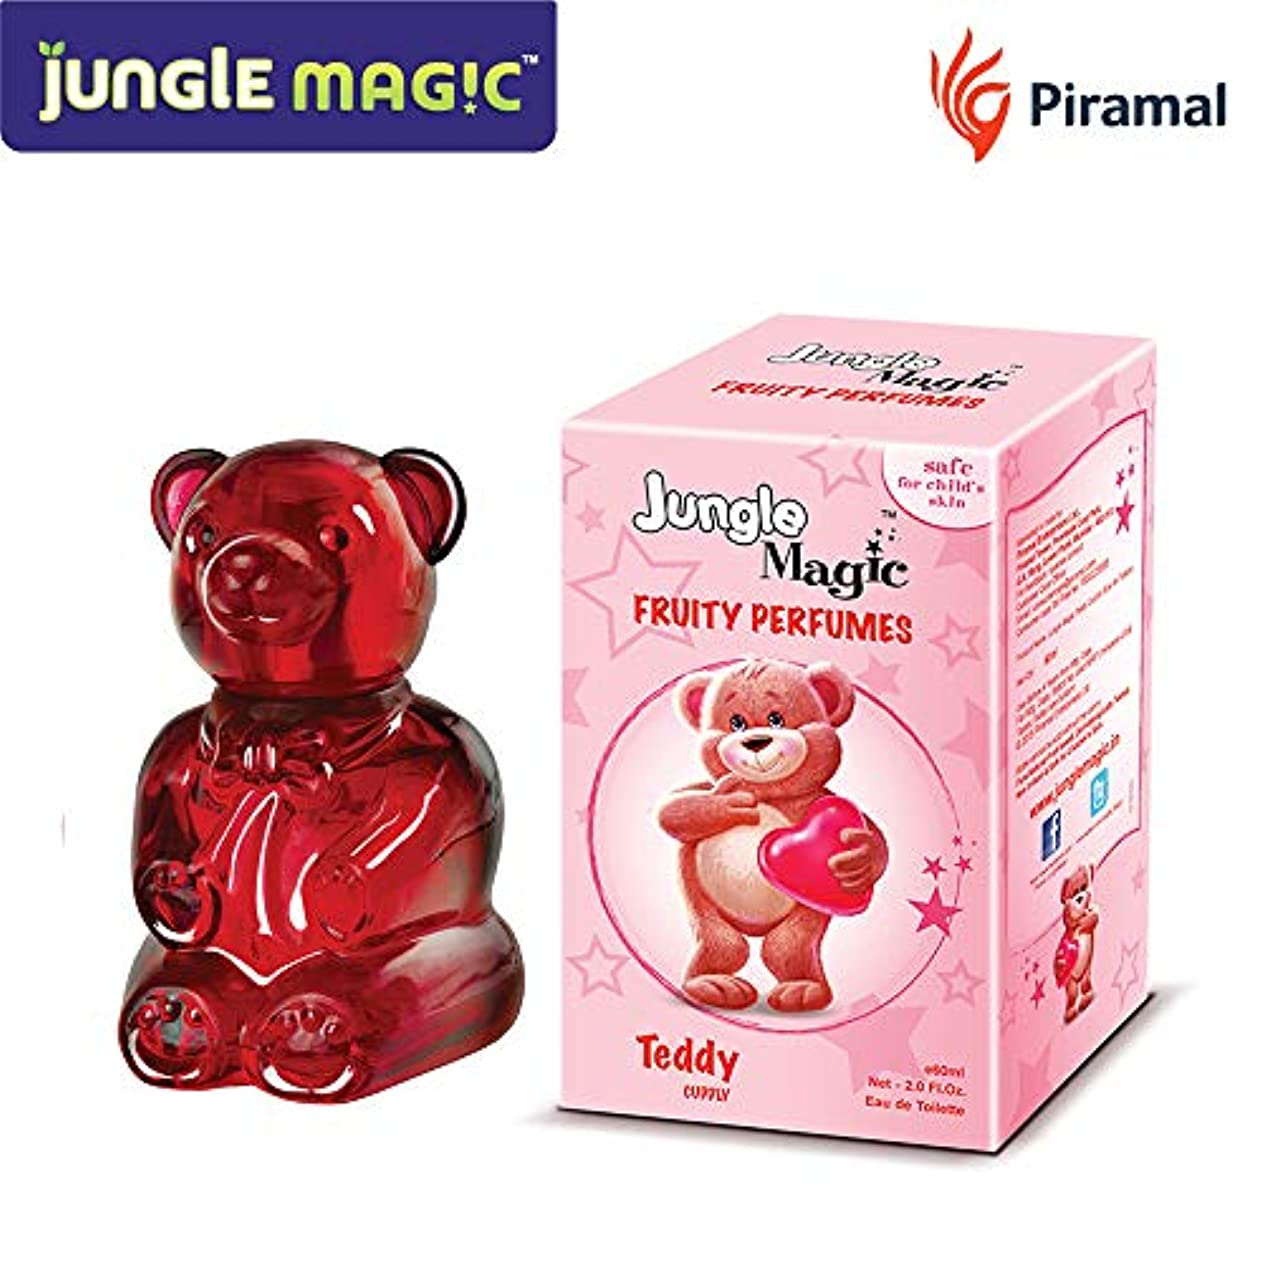 アコー二年生独立したJungle Magic Cuddly Teddy Fruity Perfume, 60ml